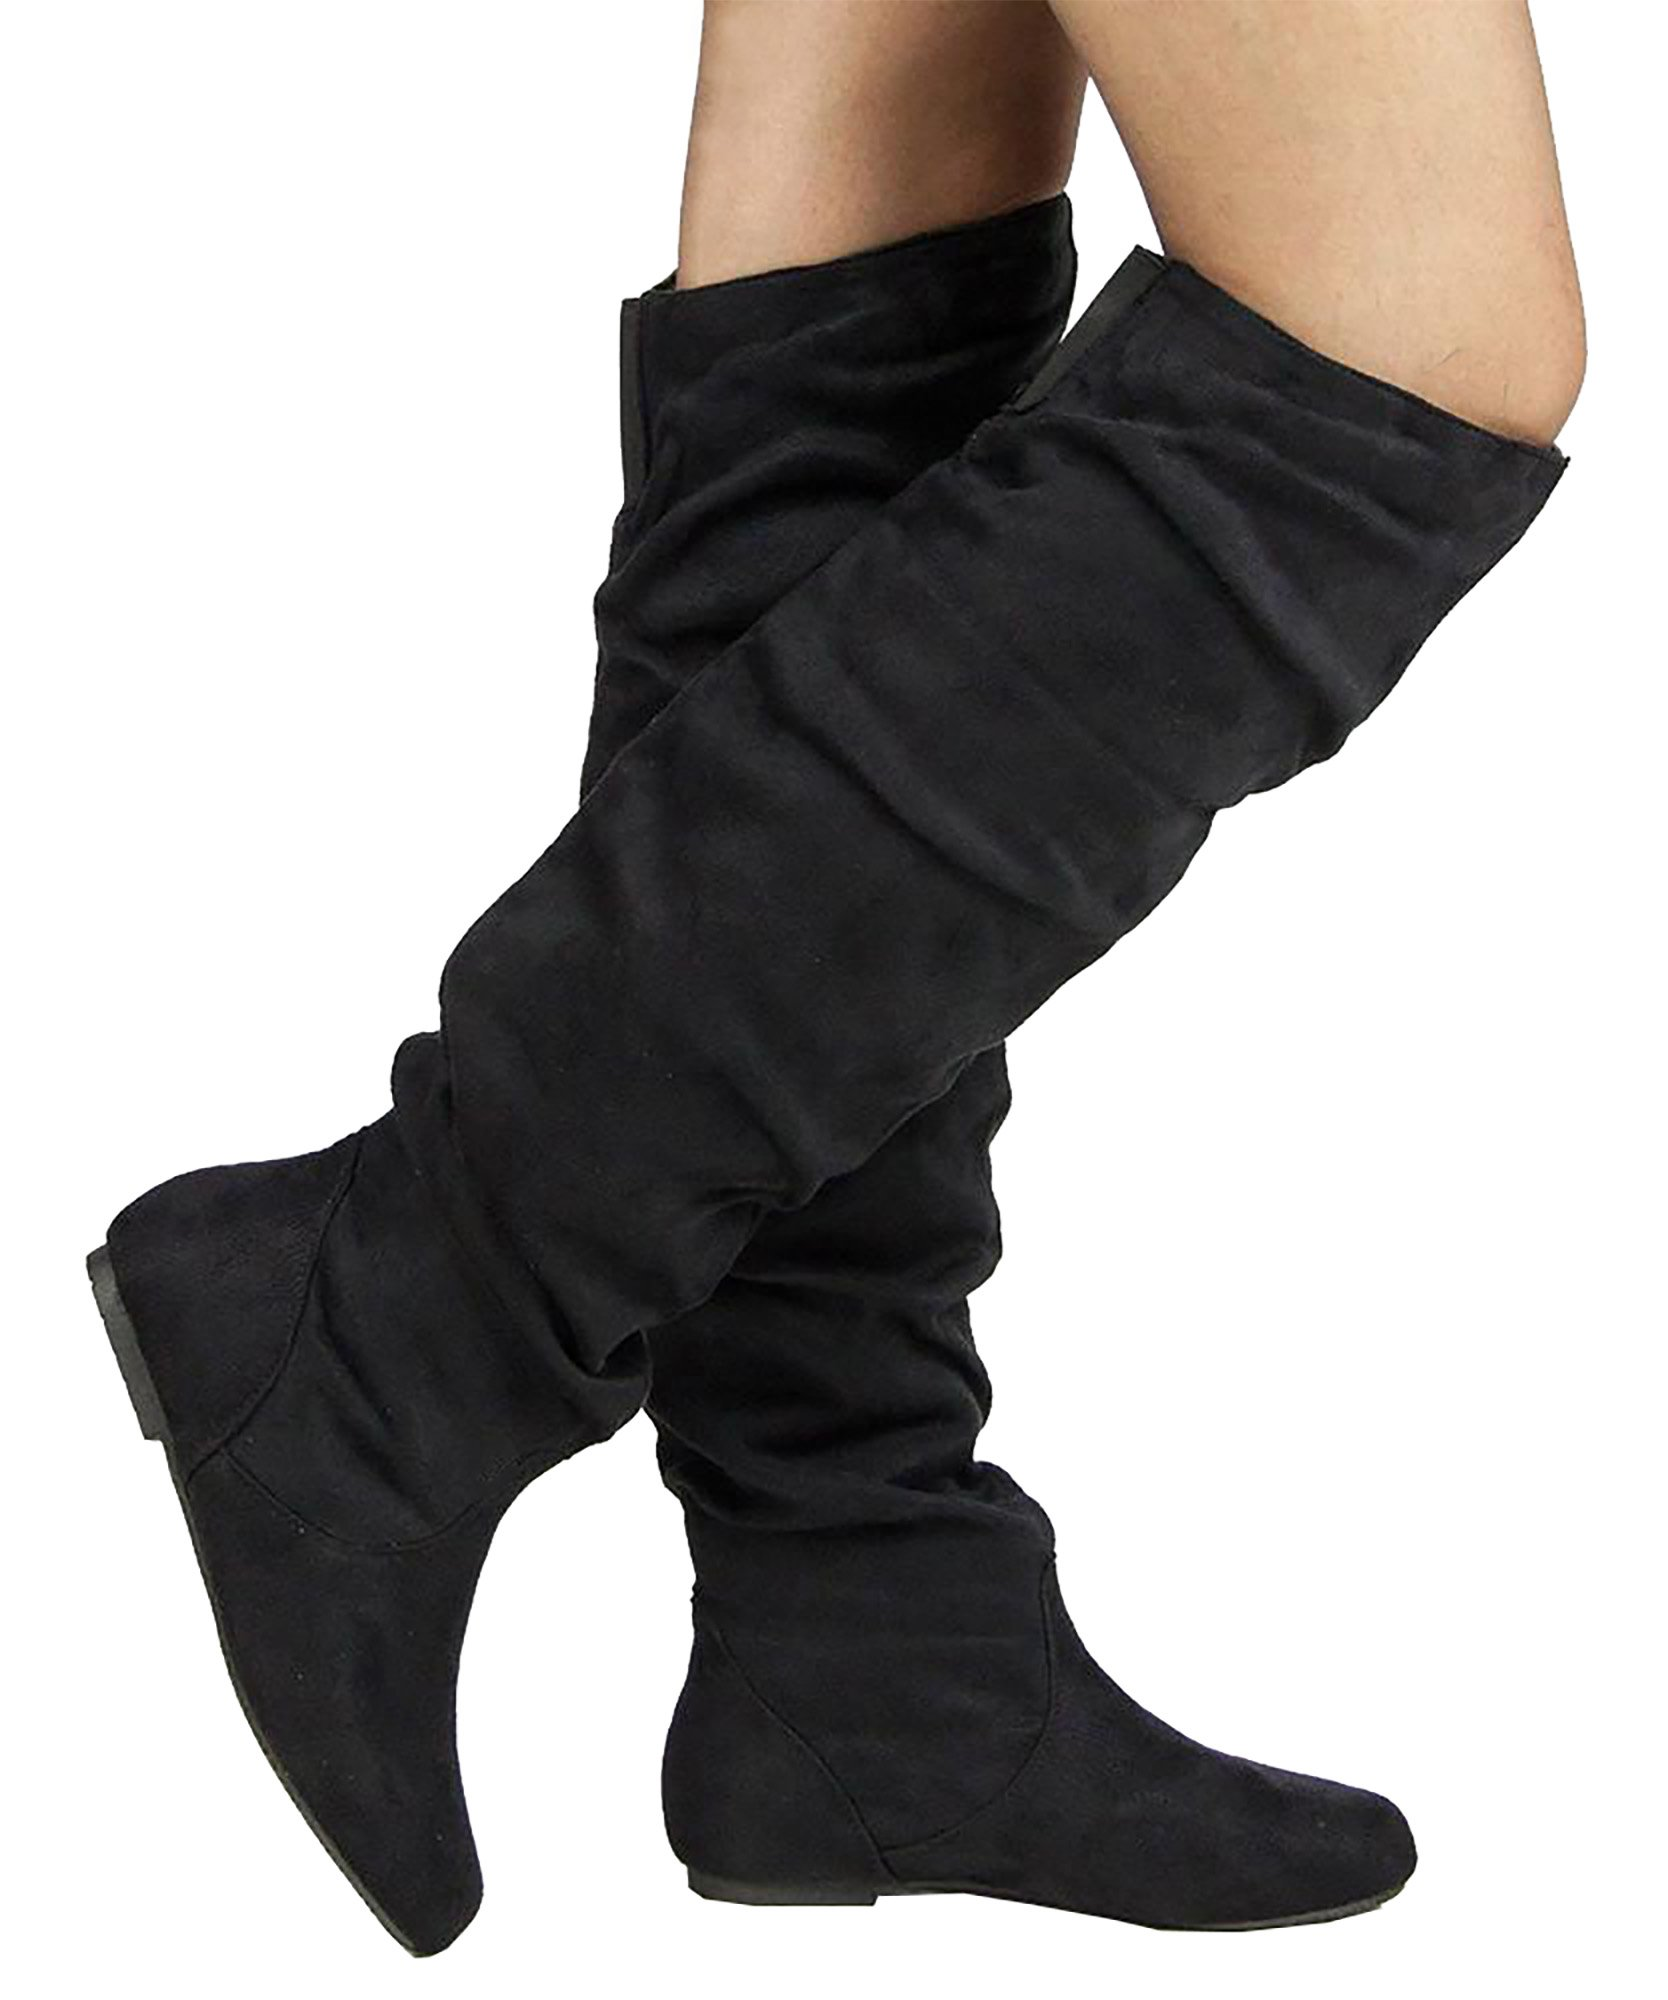 RF ROOM OF FASHION TrendHI-02 Over-The-Knee Boots (Black SU Size 7.5) by RF ROOM OF FASHION (Image #1)